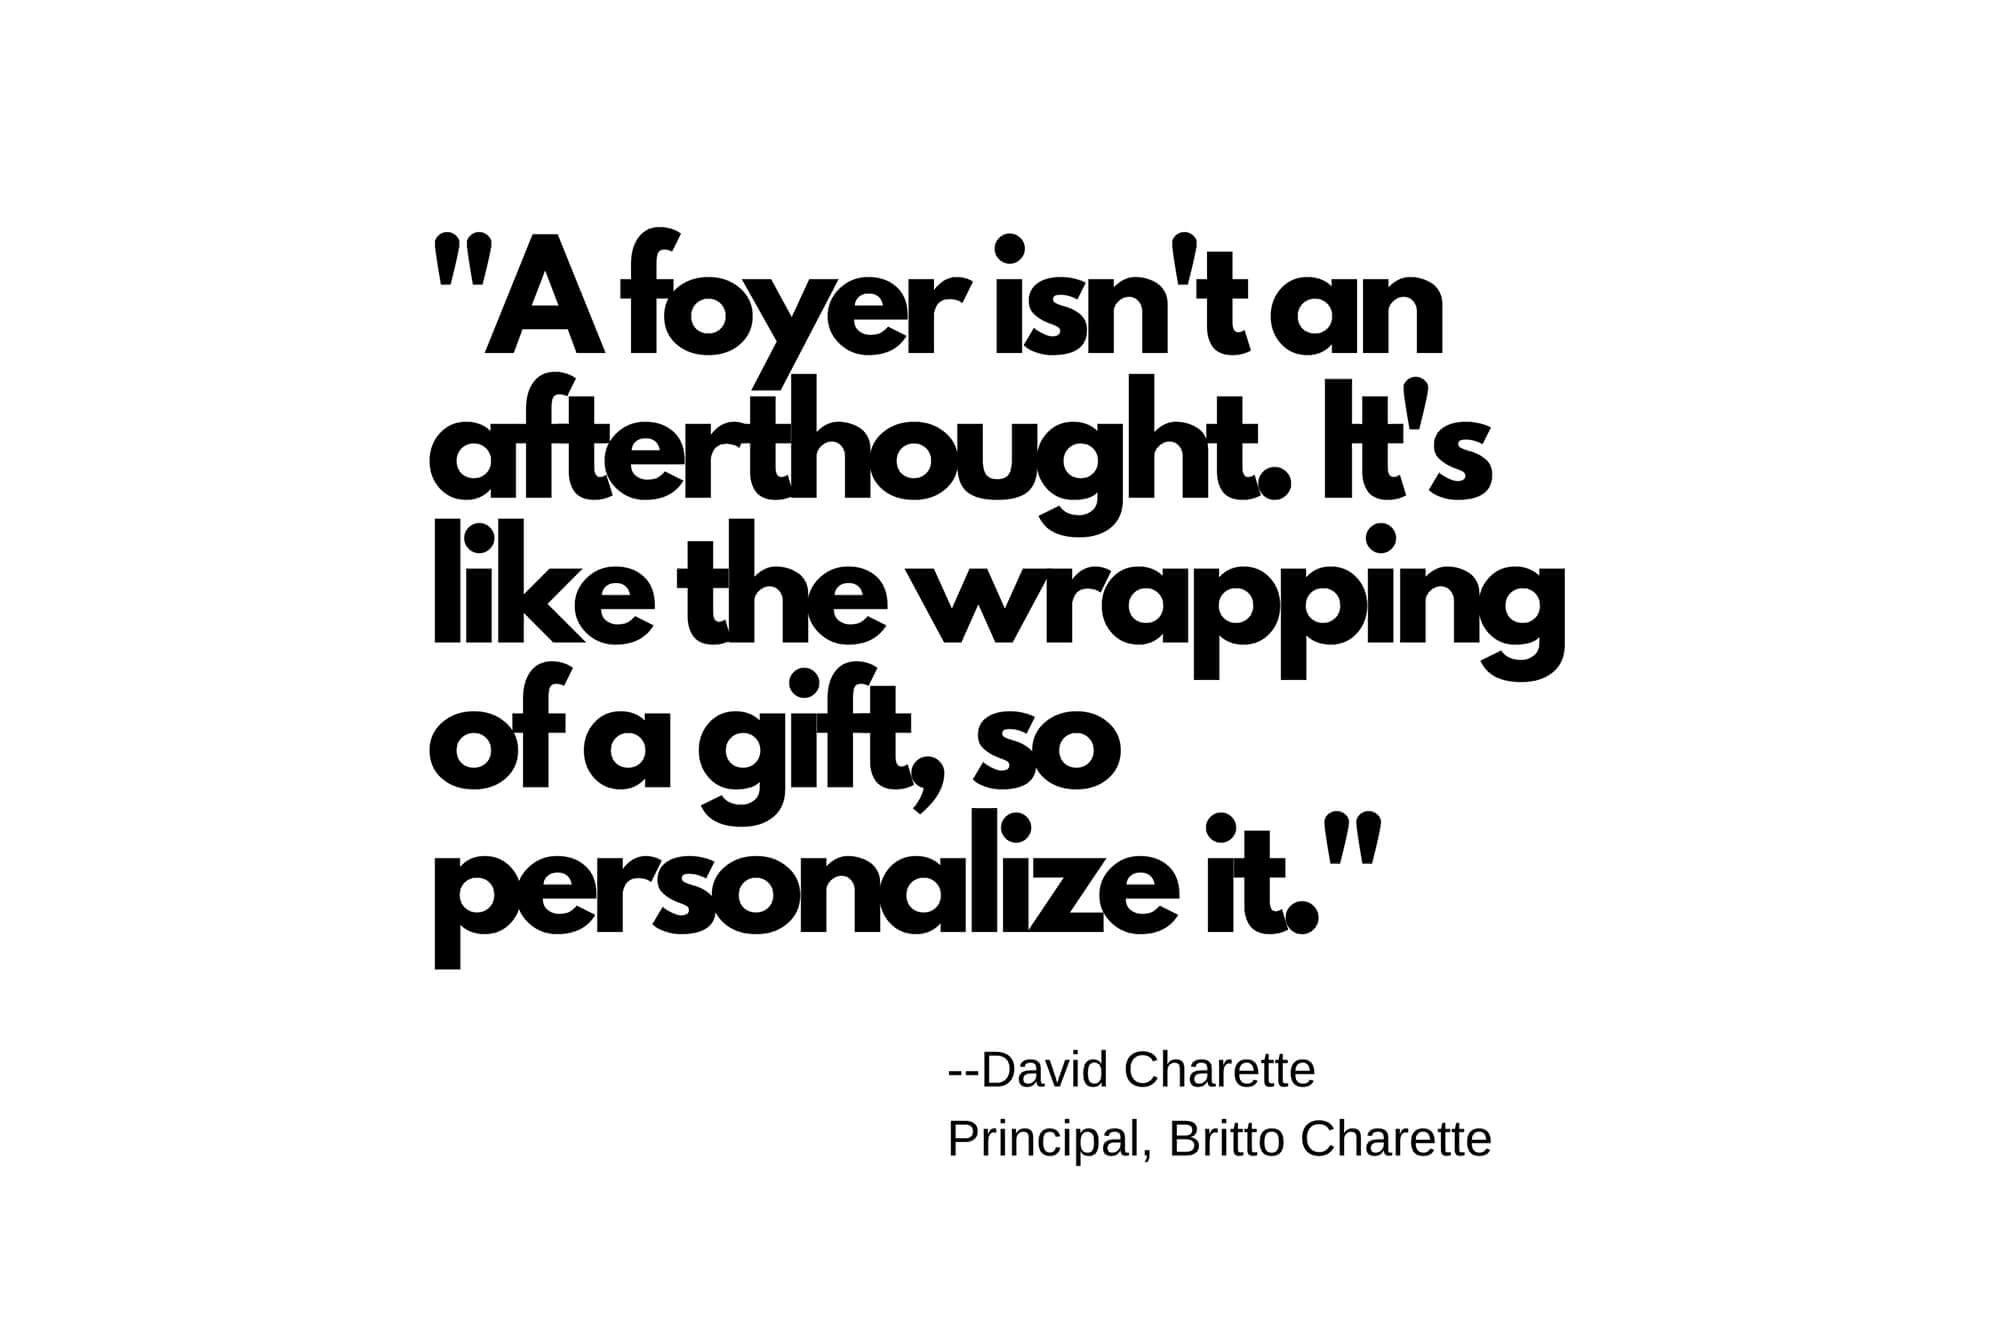 Our team at Britto Charette tackles foyers of all shapes and sizes